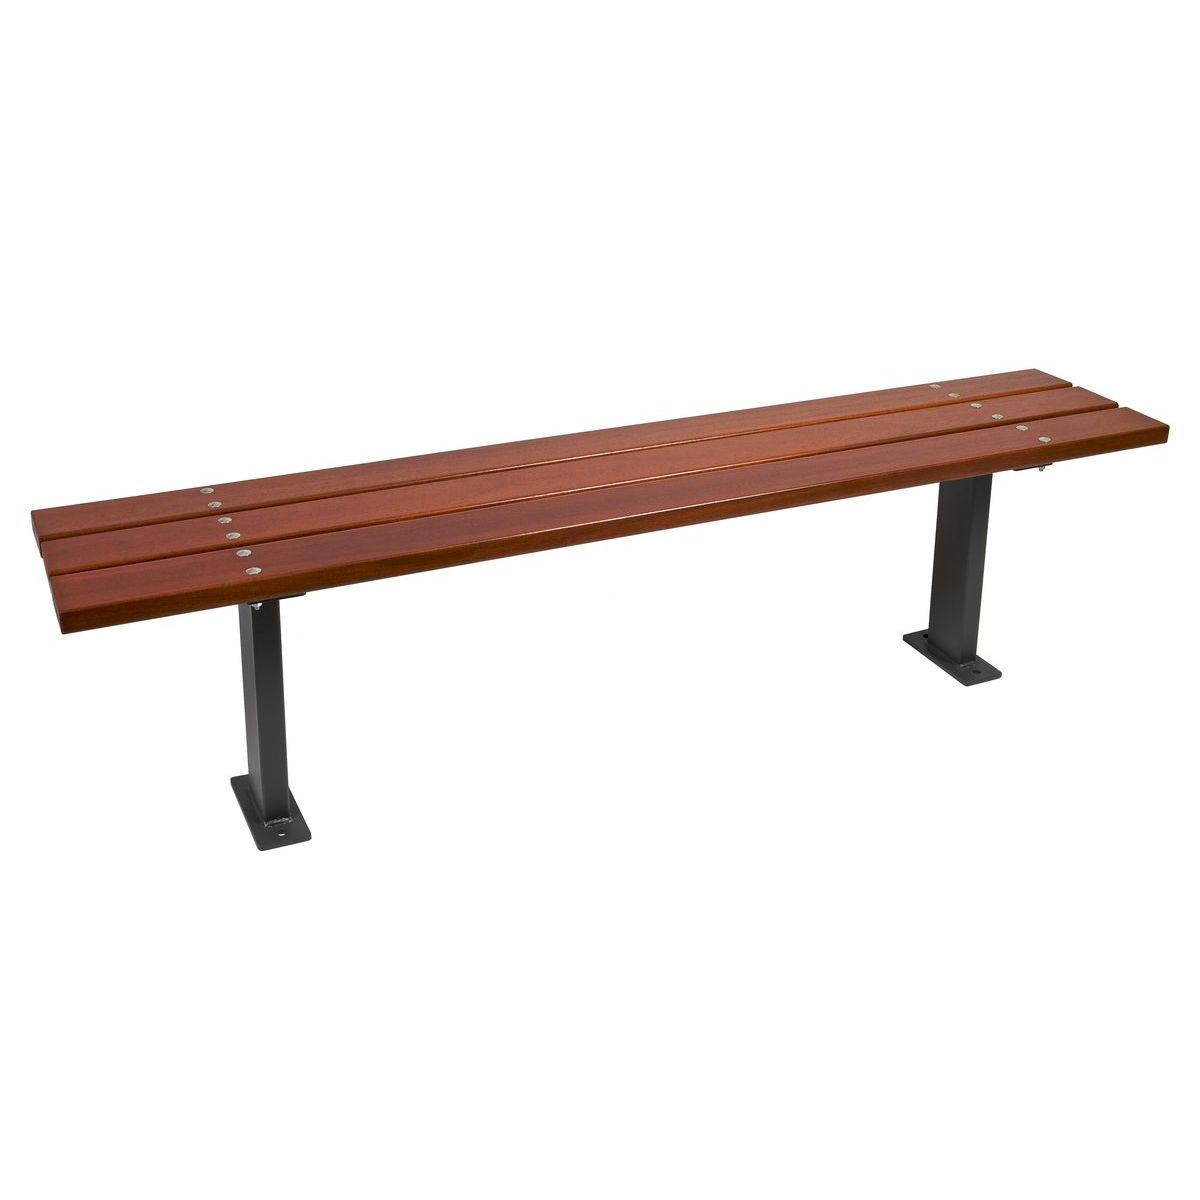 Banquette Bench C-1012 zoomed